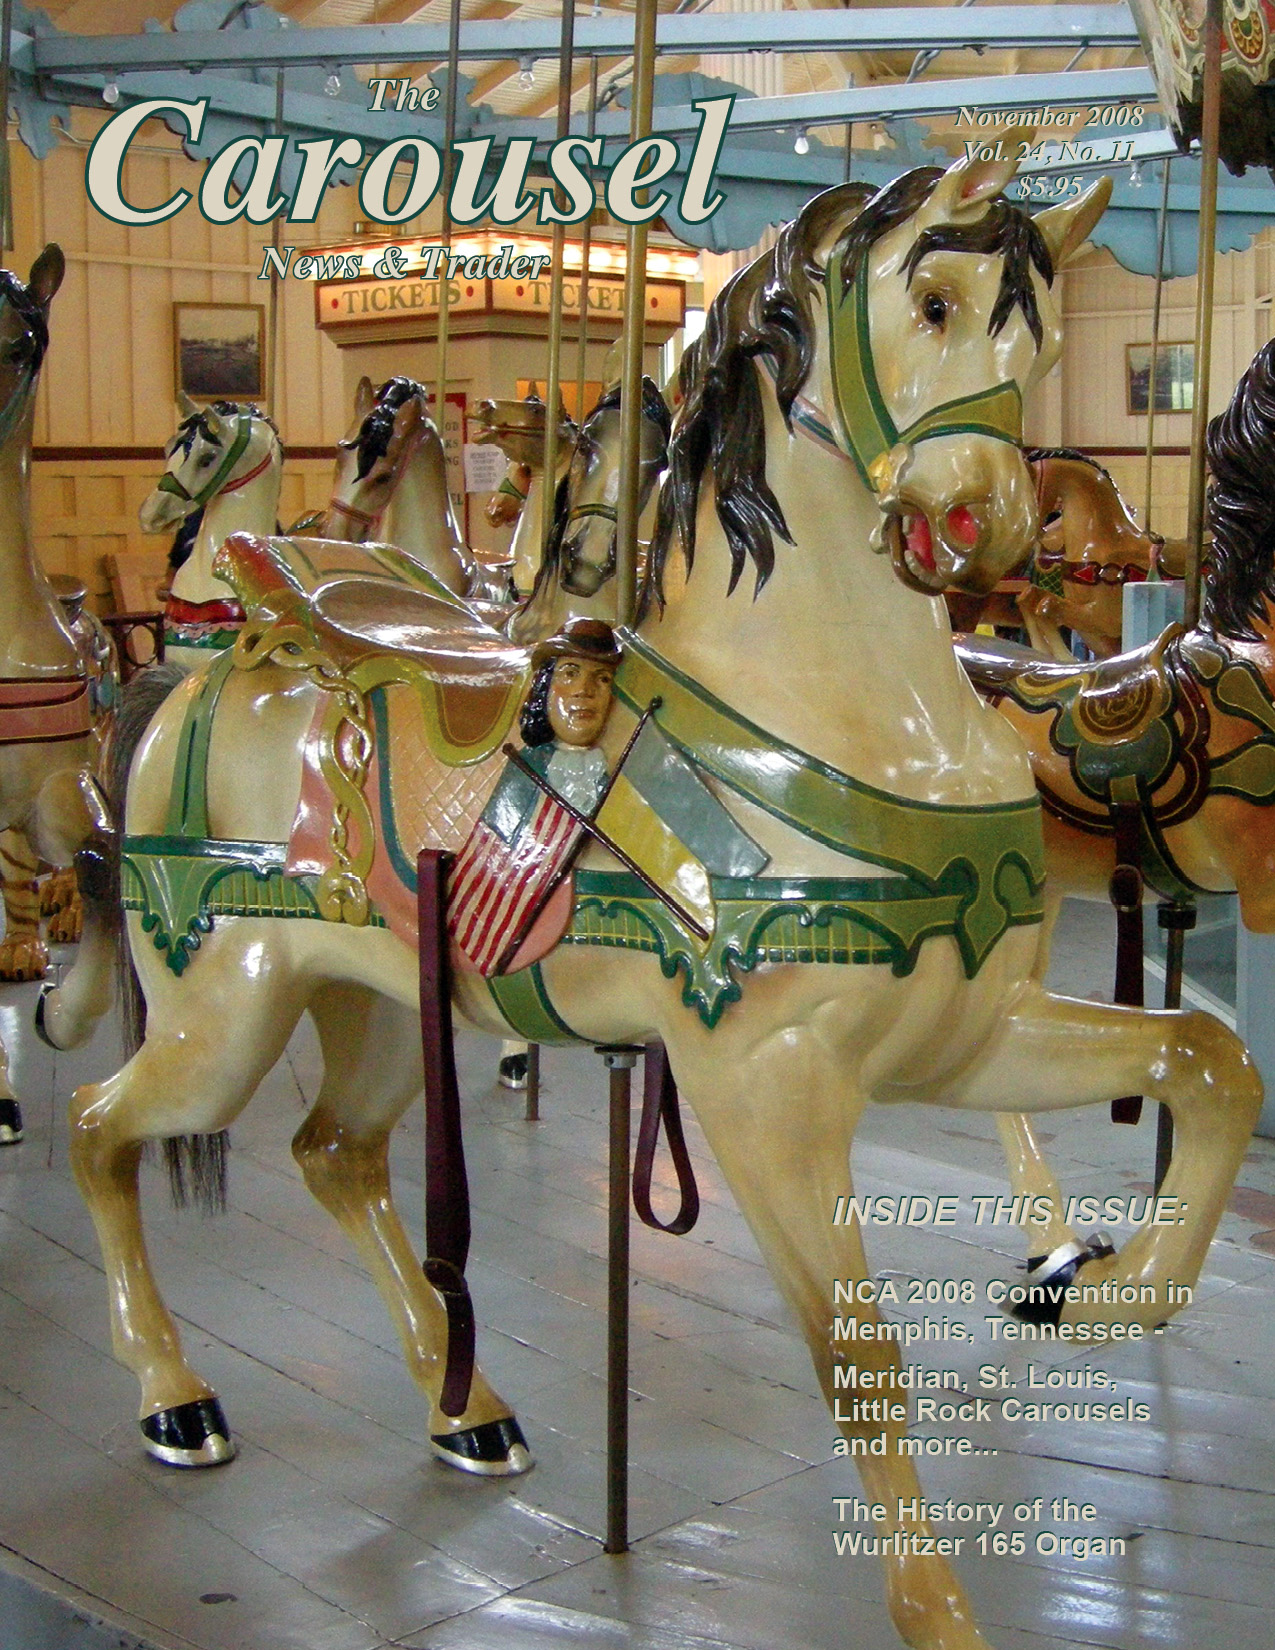 Carousel-news-cover-11-Meridian-MS-Dentzel-carousel-November-2008